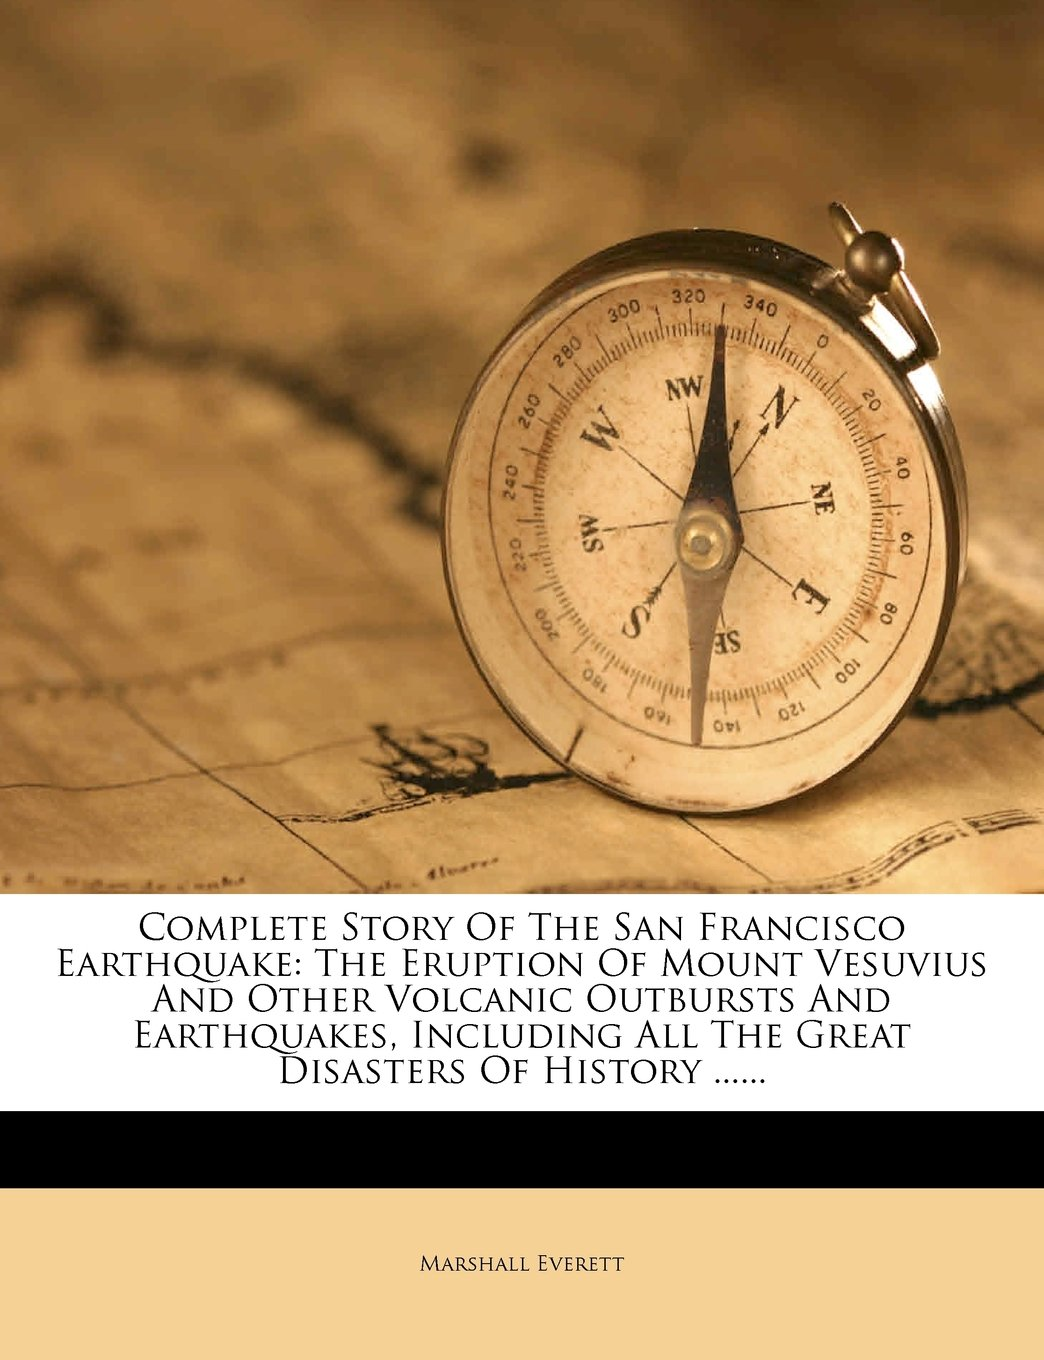 complete story of the san francisco earthquake the eruption of mount vesuvius and other volcanic outbursts and earthquakes including all the great